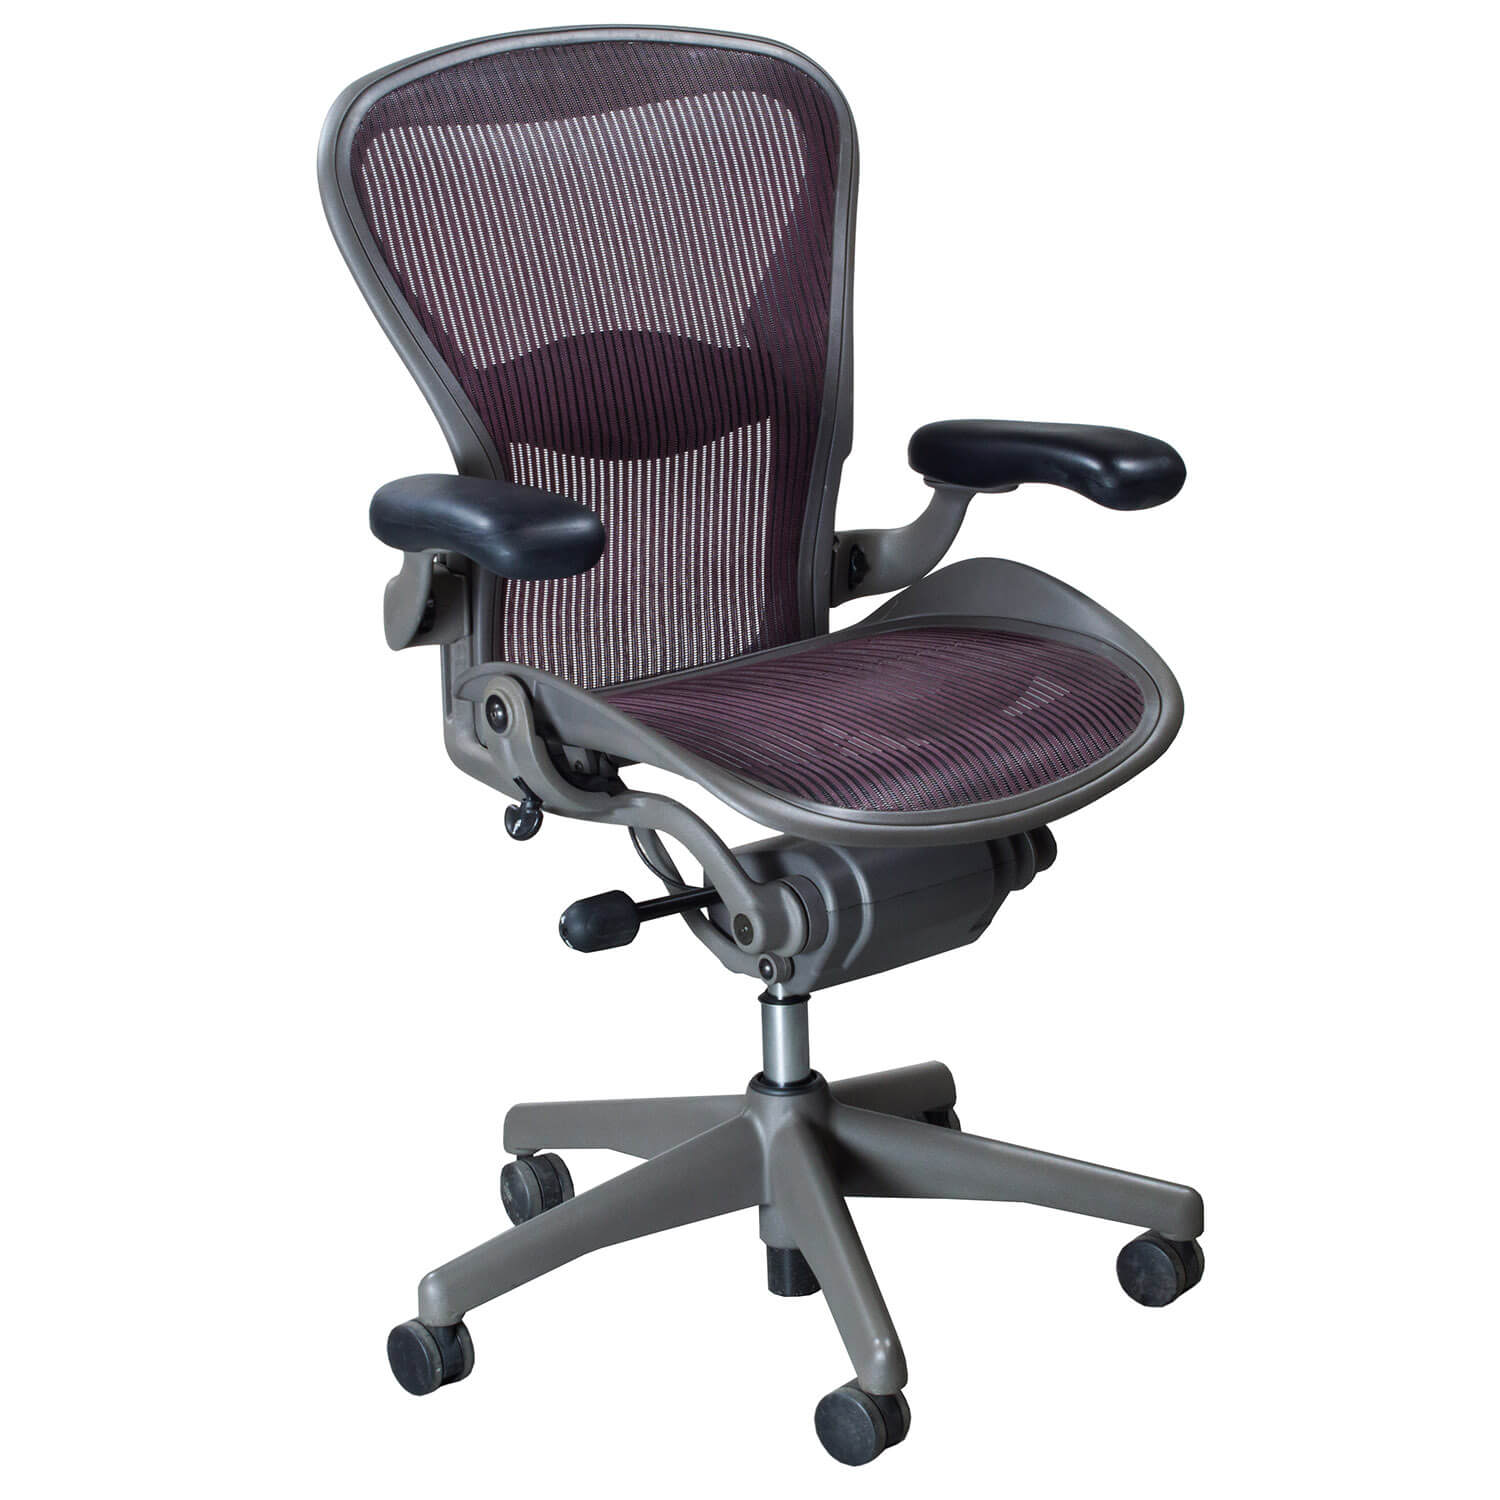 aeron office chairs zero gravity chair uk second hand used